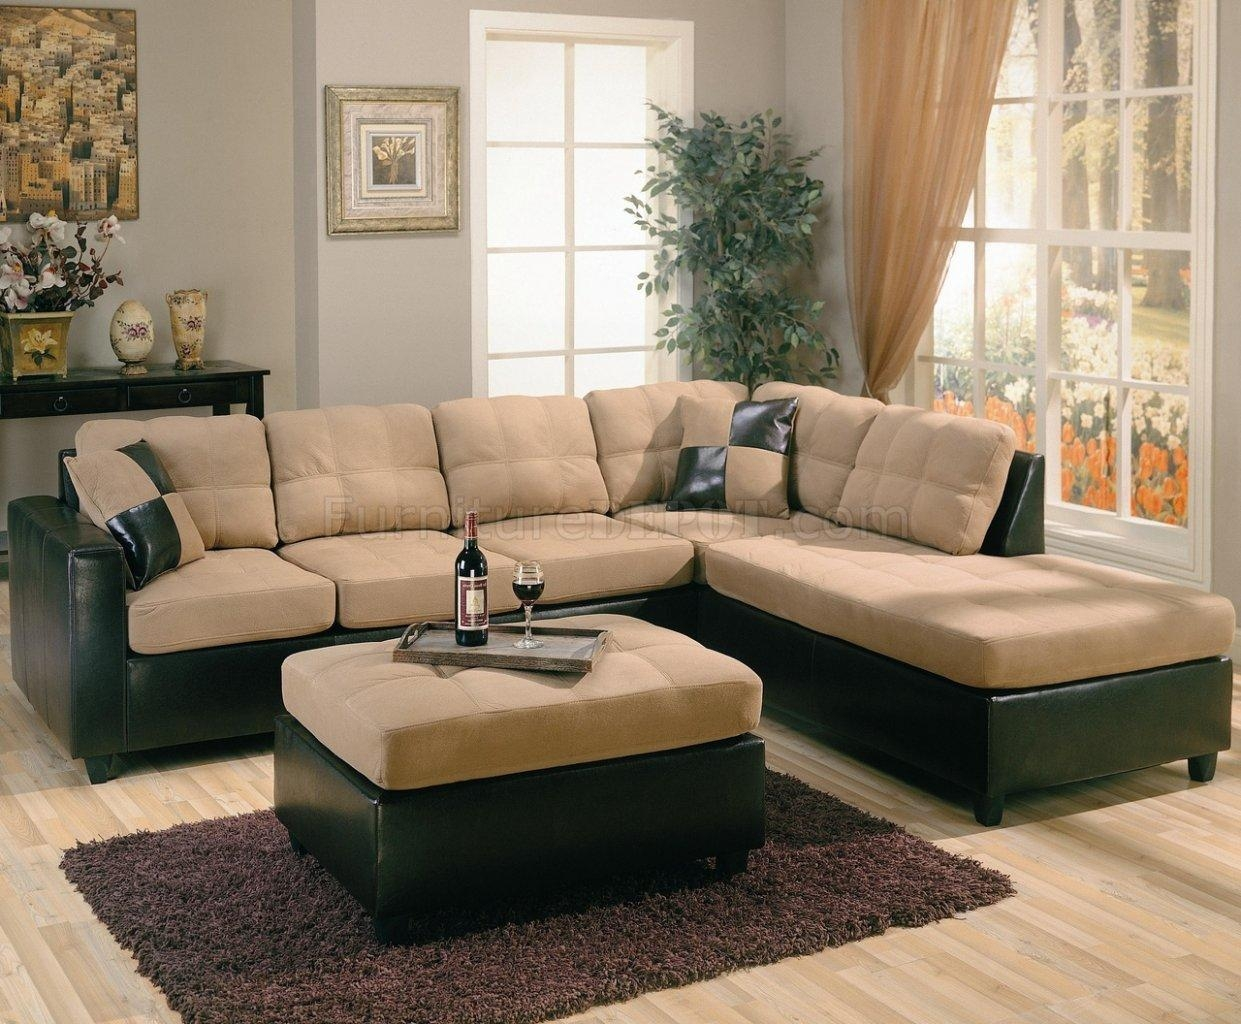 Two Tone Tan Microfiber & Dark Brown Faux Leather Sectional Sofa Regarding Faux Leather Sectional Sofas (View 9 of 15)